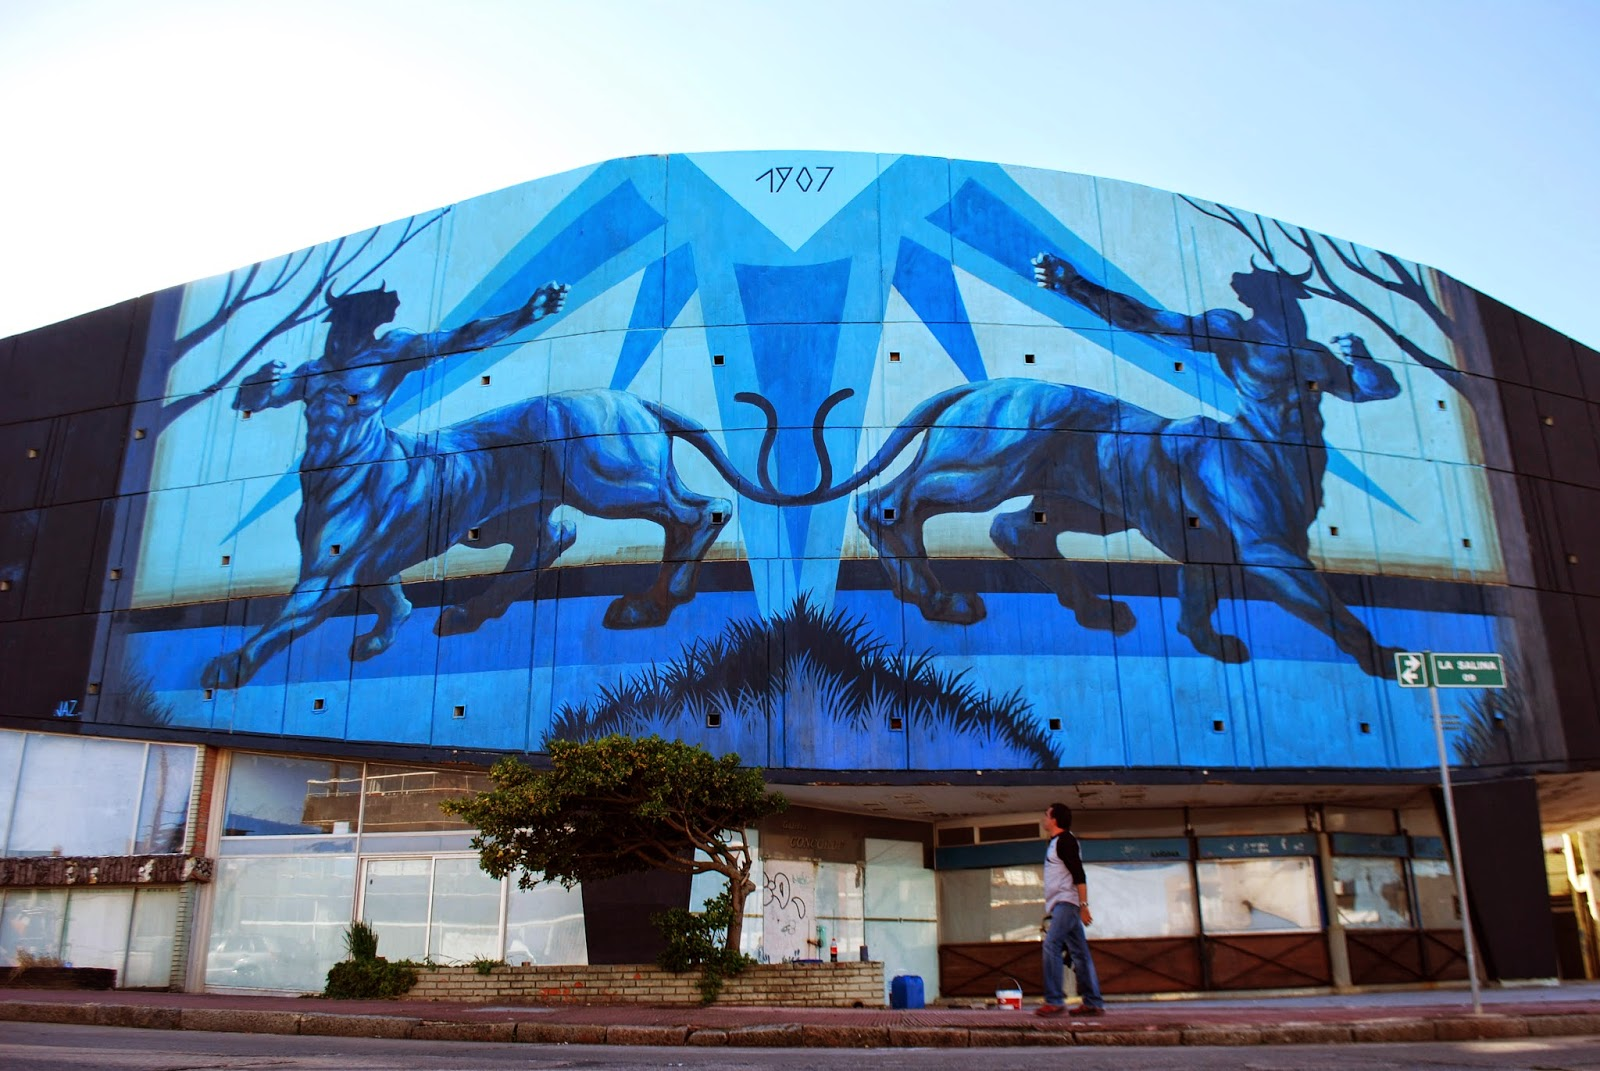 While we last heard from him last month in Australia (covered), JAZ is now back in South America where he just finished working on this new piece somewhere in Punta Del Este, Uruguay.